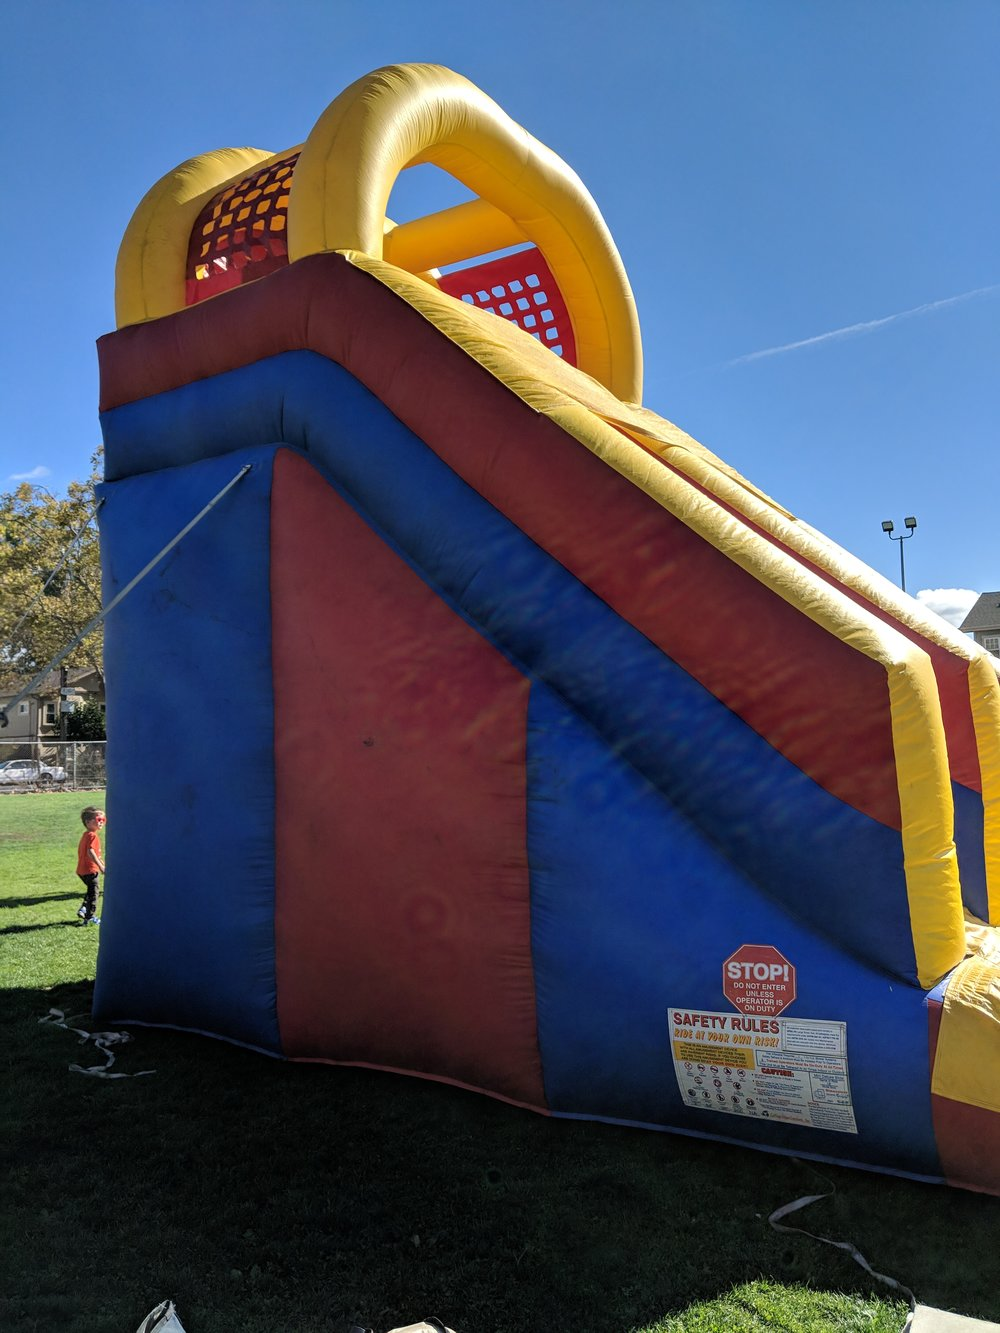 Rosa Parks' giant bouncy slide. The fun to be had is worth signing the liability waiver for!